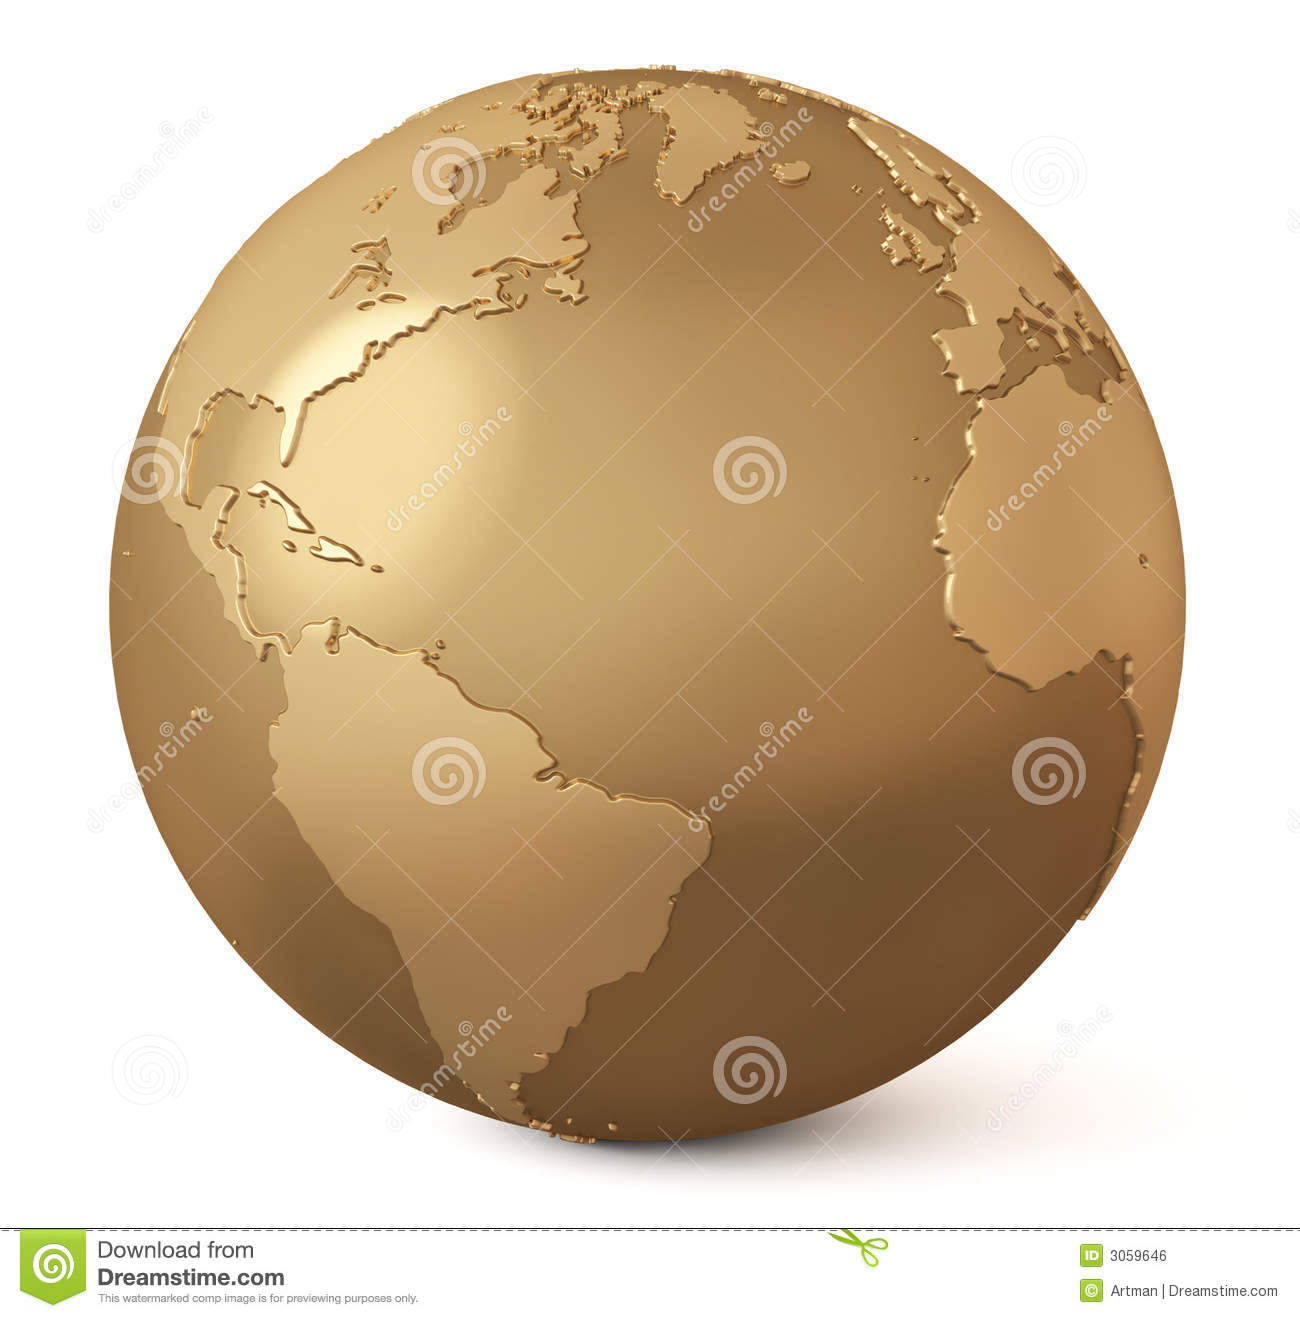 Gold globe / Earth model